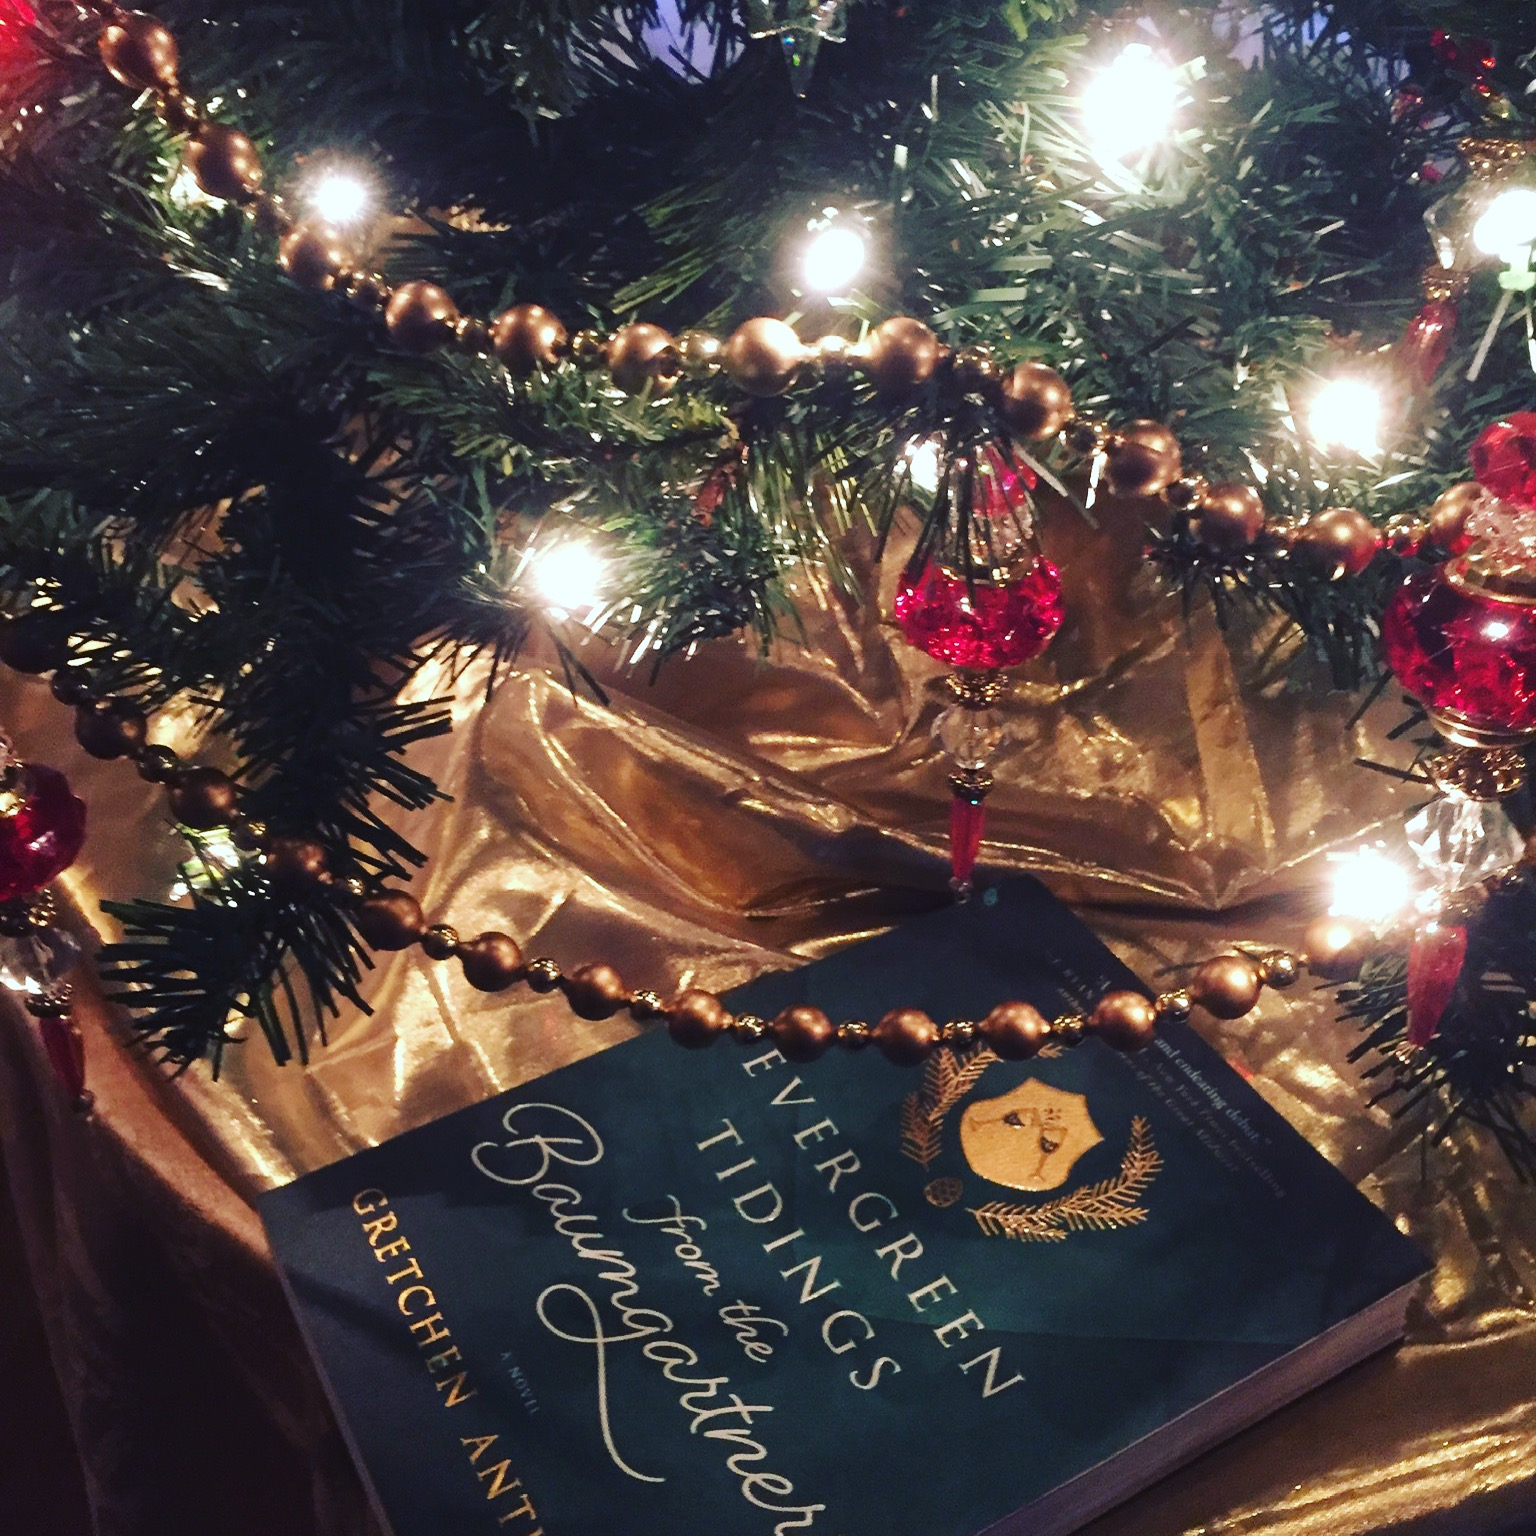 Book Review for EVERGREEN TIDINGS FROM THE BAUMGARTNERS by Gretchen Anthony